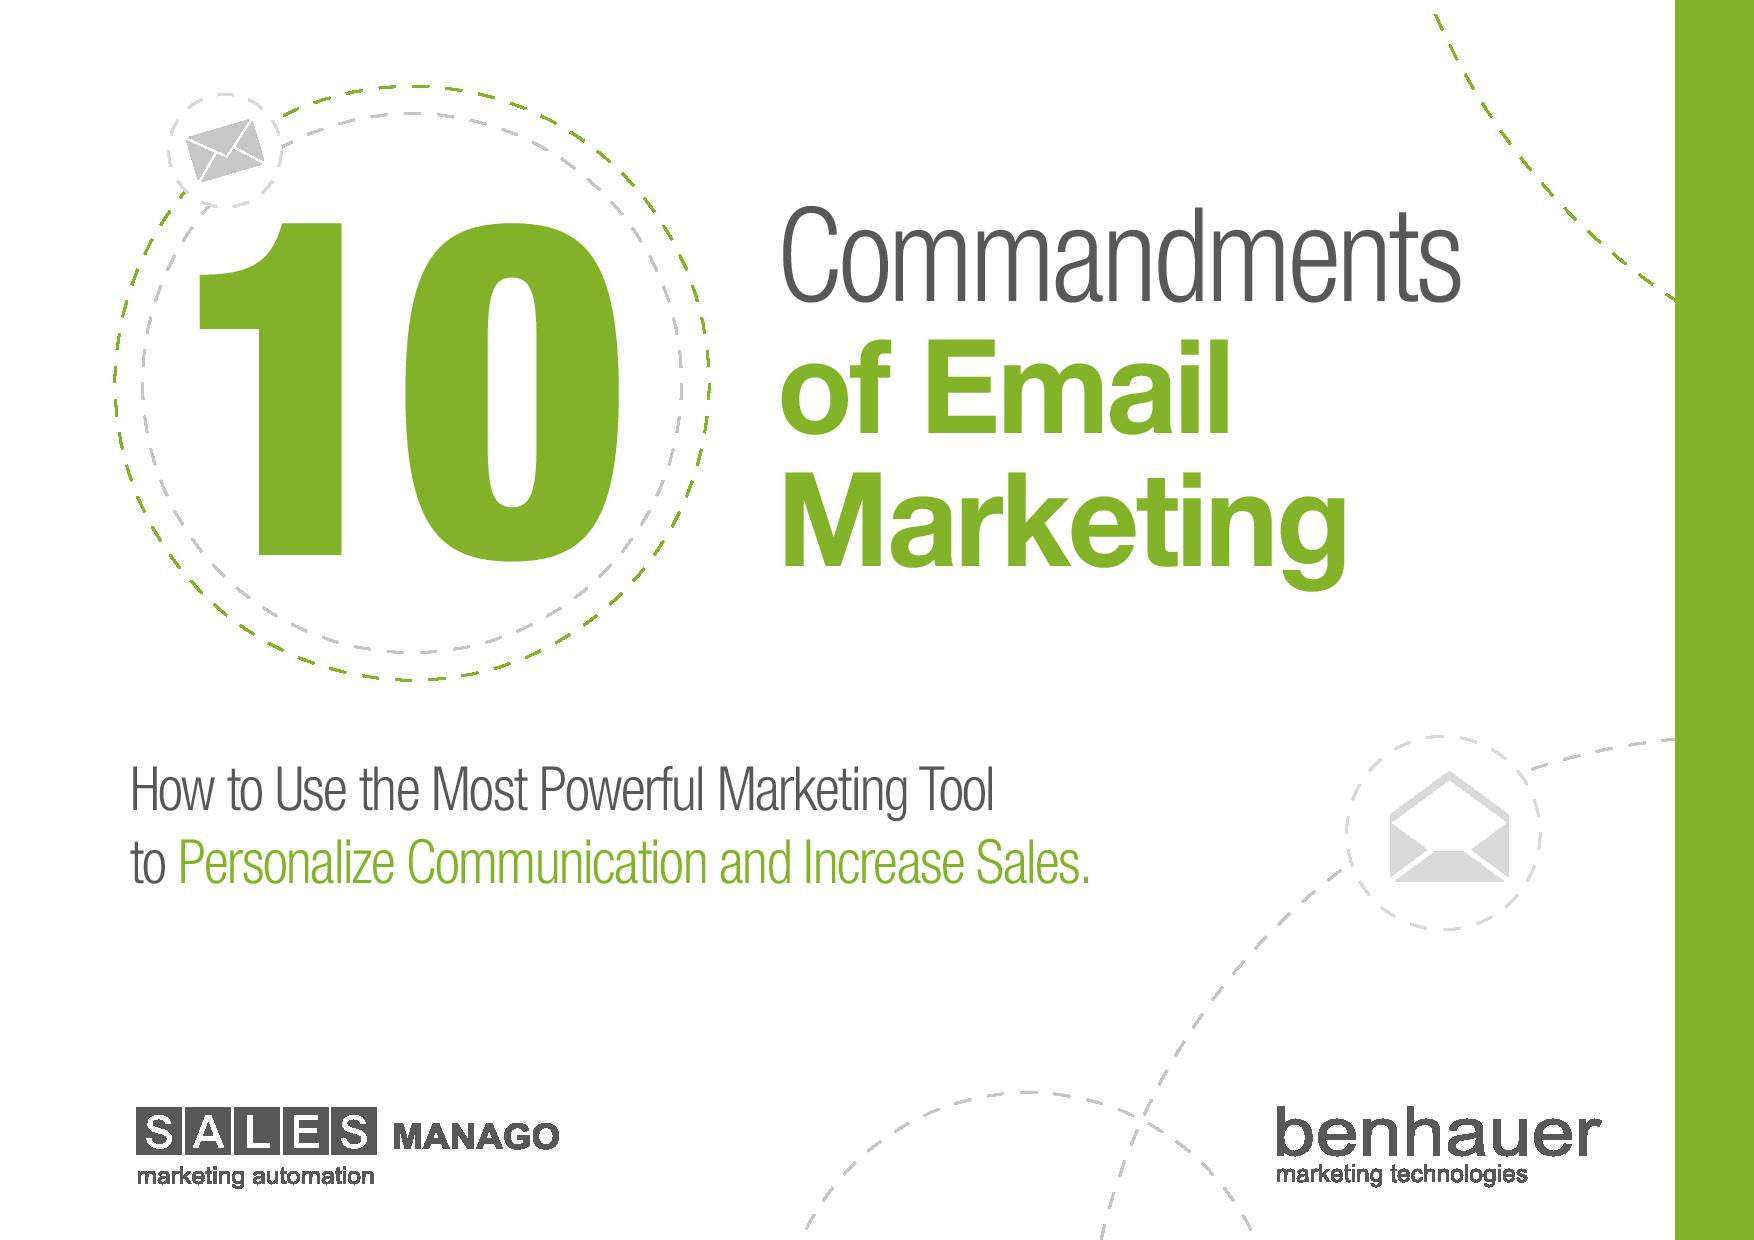 10_Commandments_of_Email_Marketing